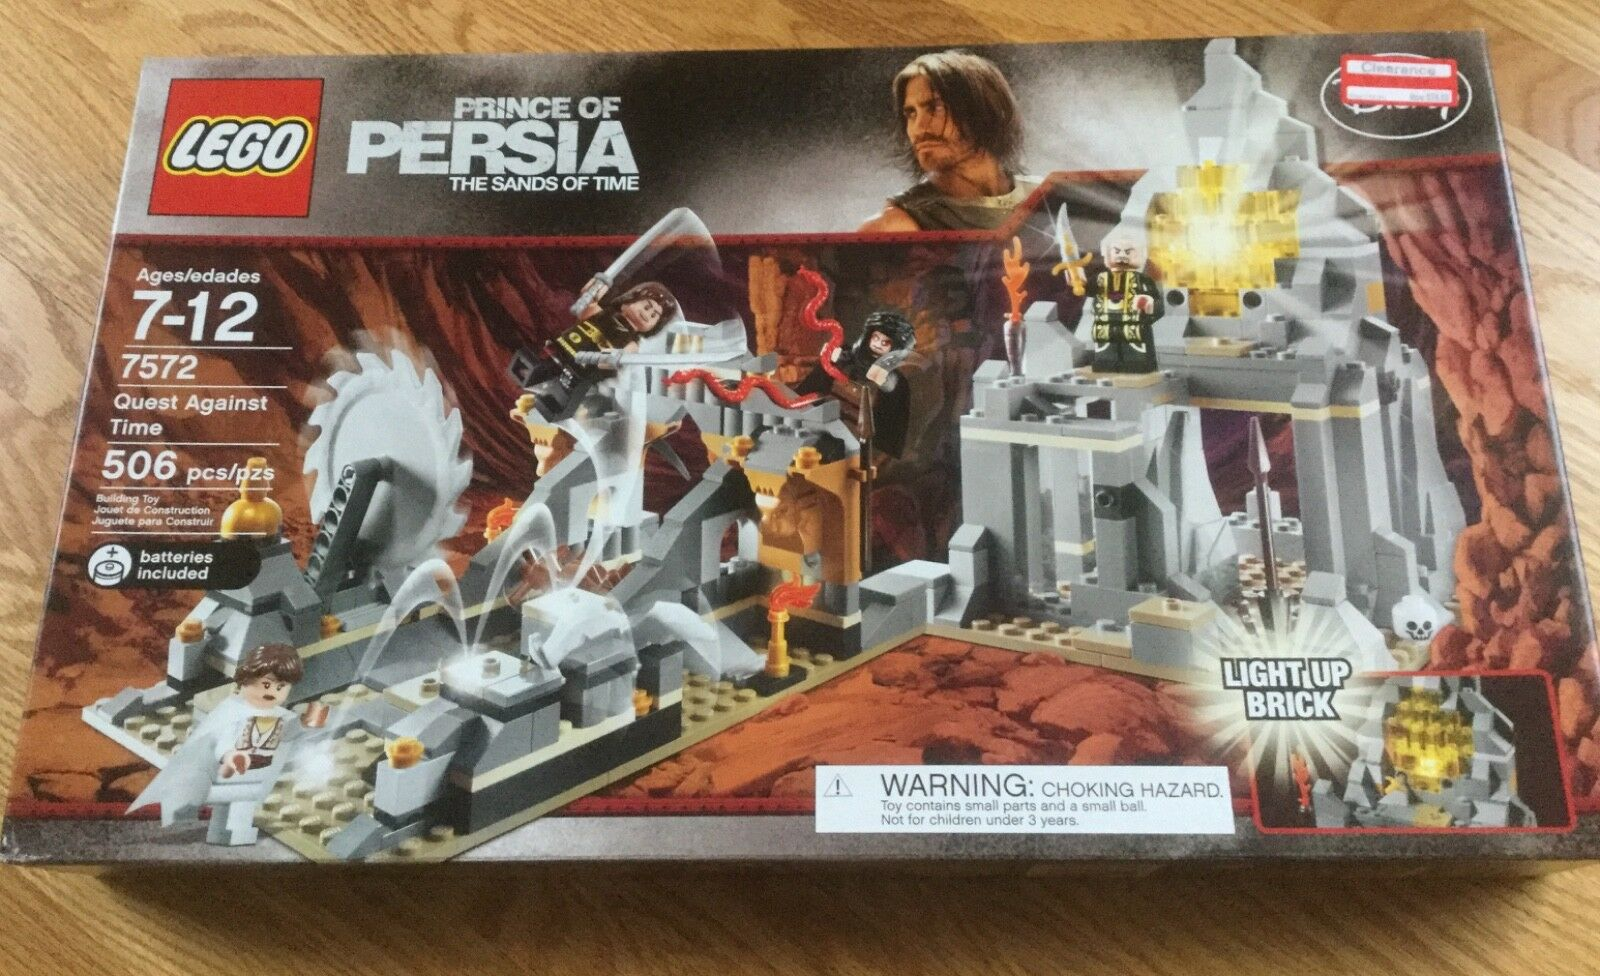 LEGO LEGO LEGO 7572 PRINCE OF PERSIA - QUEST AGAINST TIME - NEW - FACTORY SEALED    8aed0e